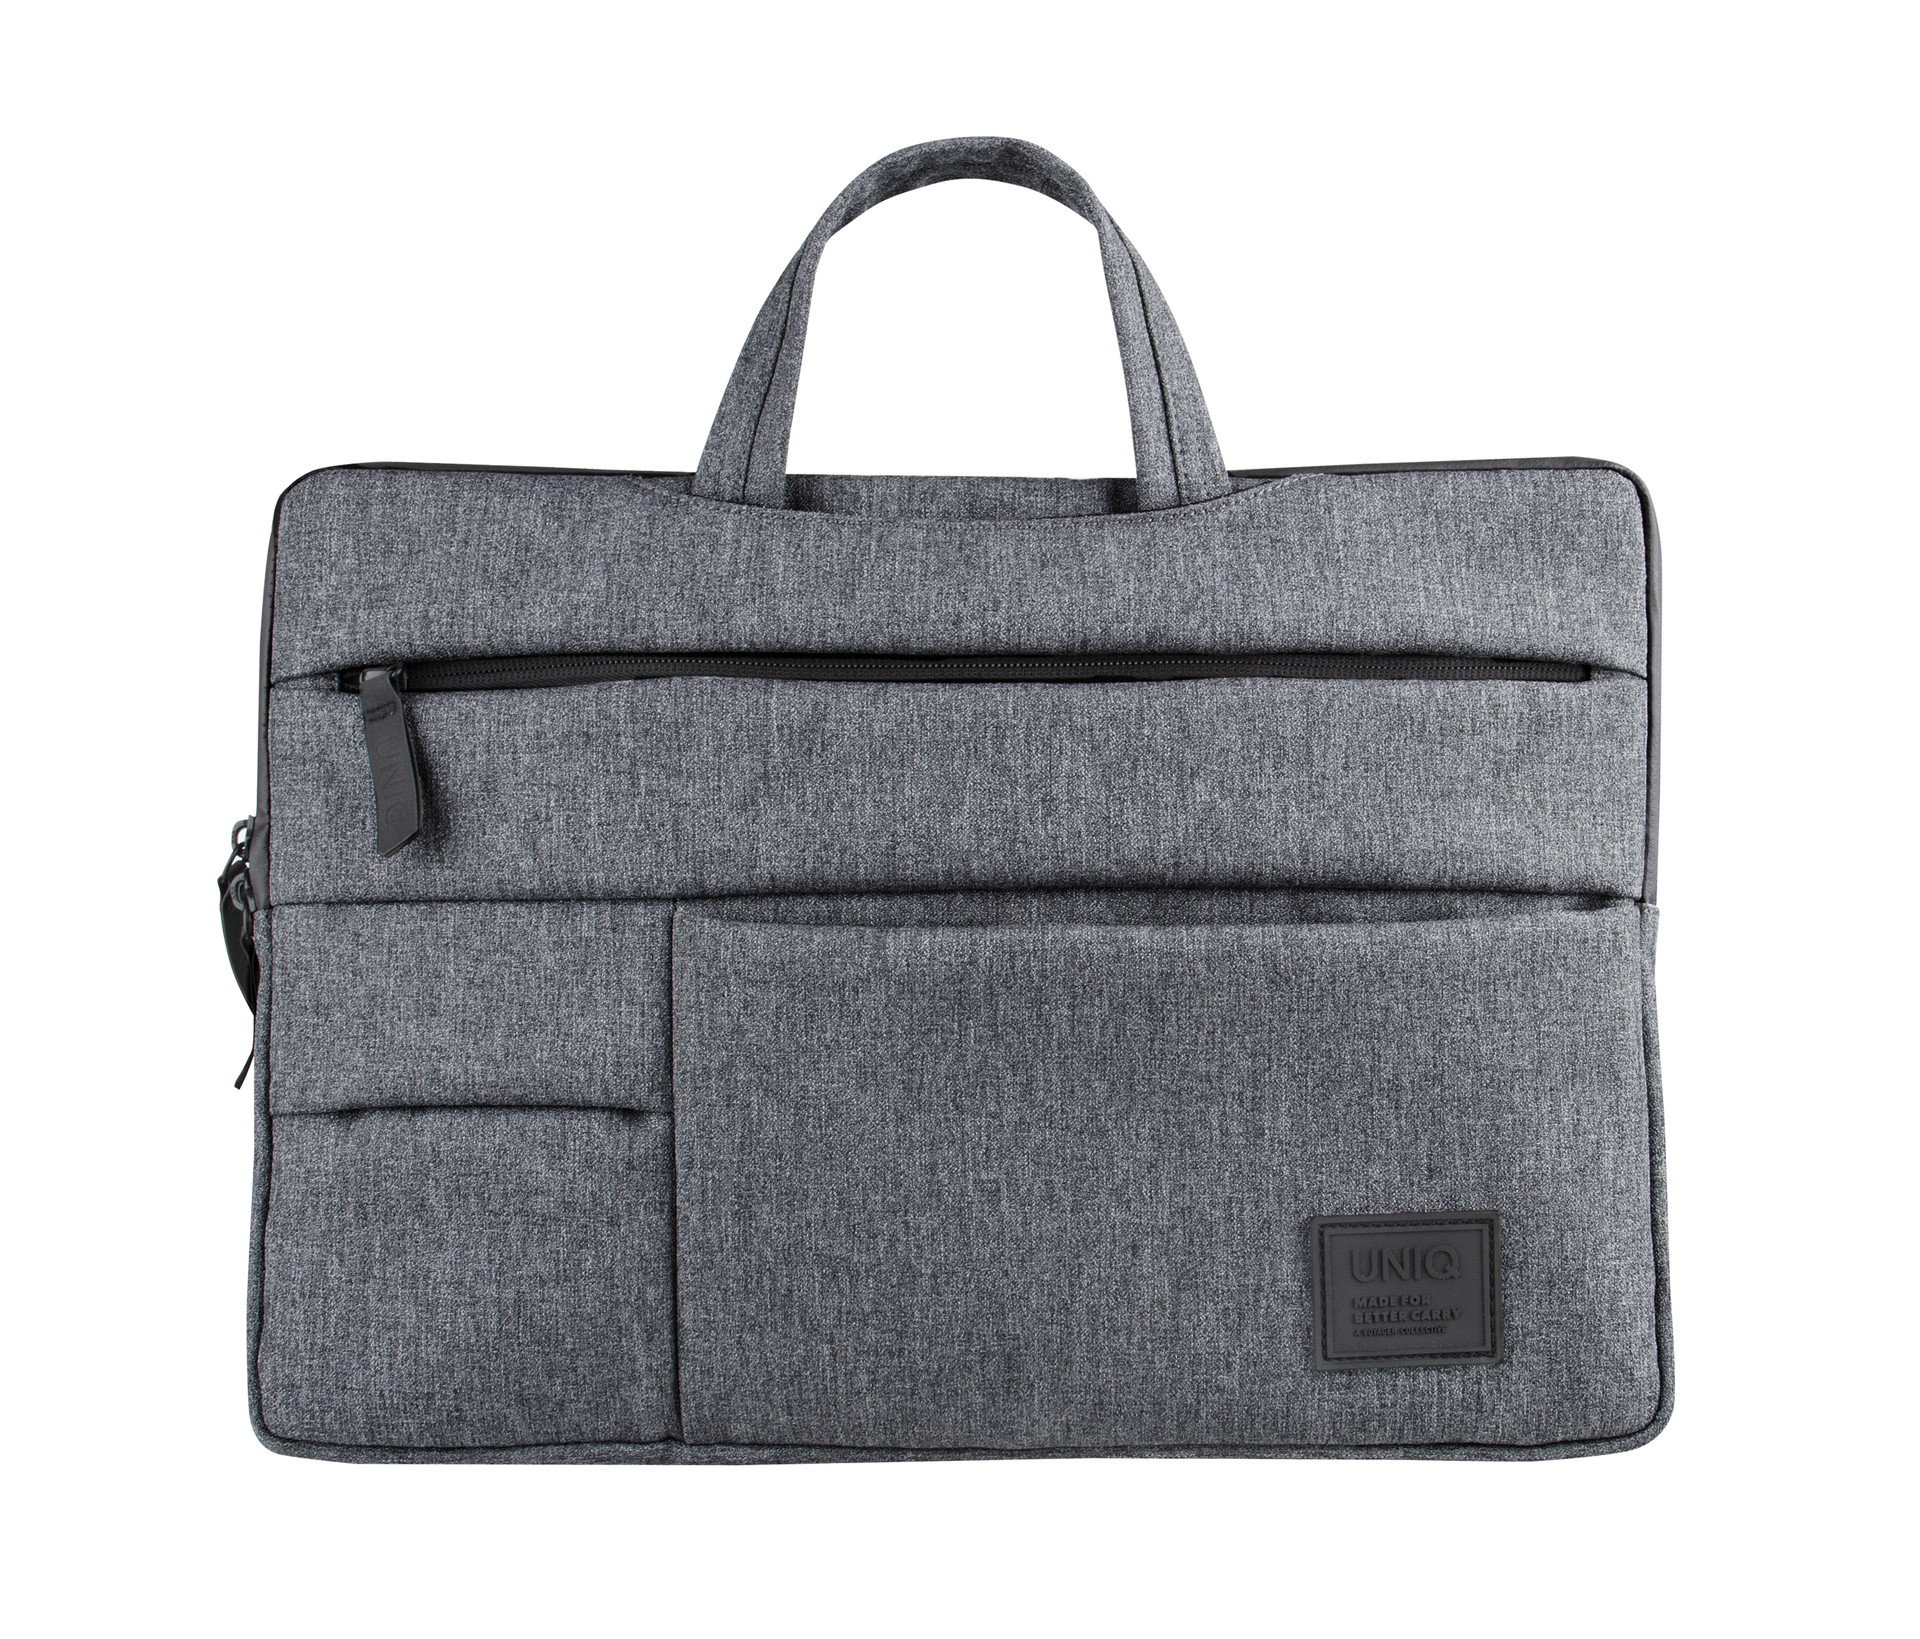 Uniq Cavalier 2-in-1 Laptop Sleeve (Up to 15 Inche) - Marl Grey